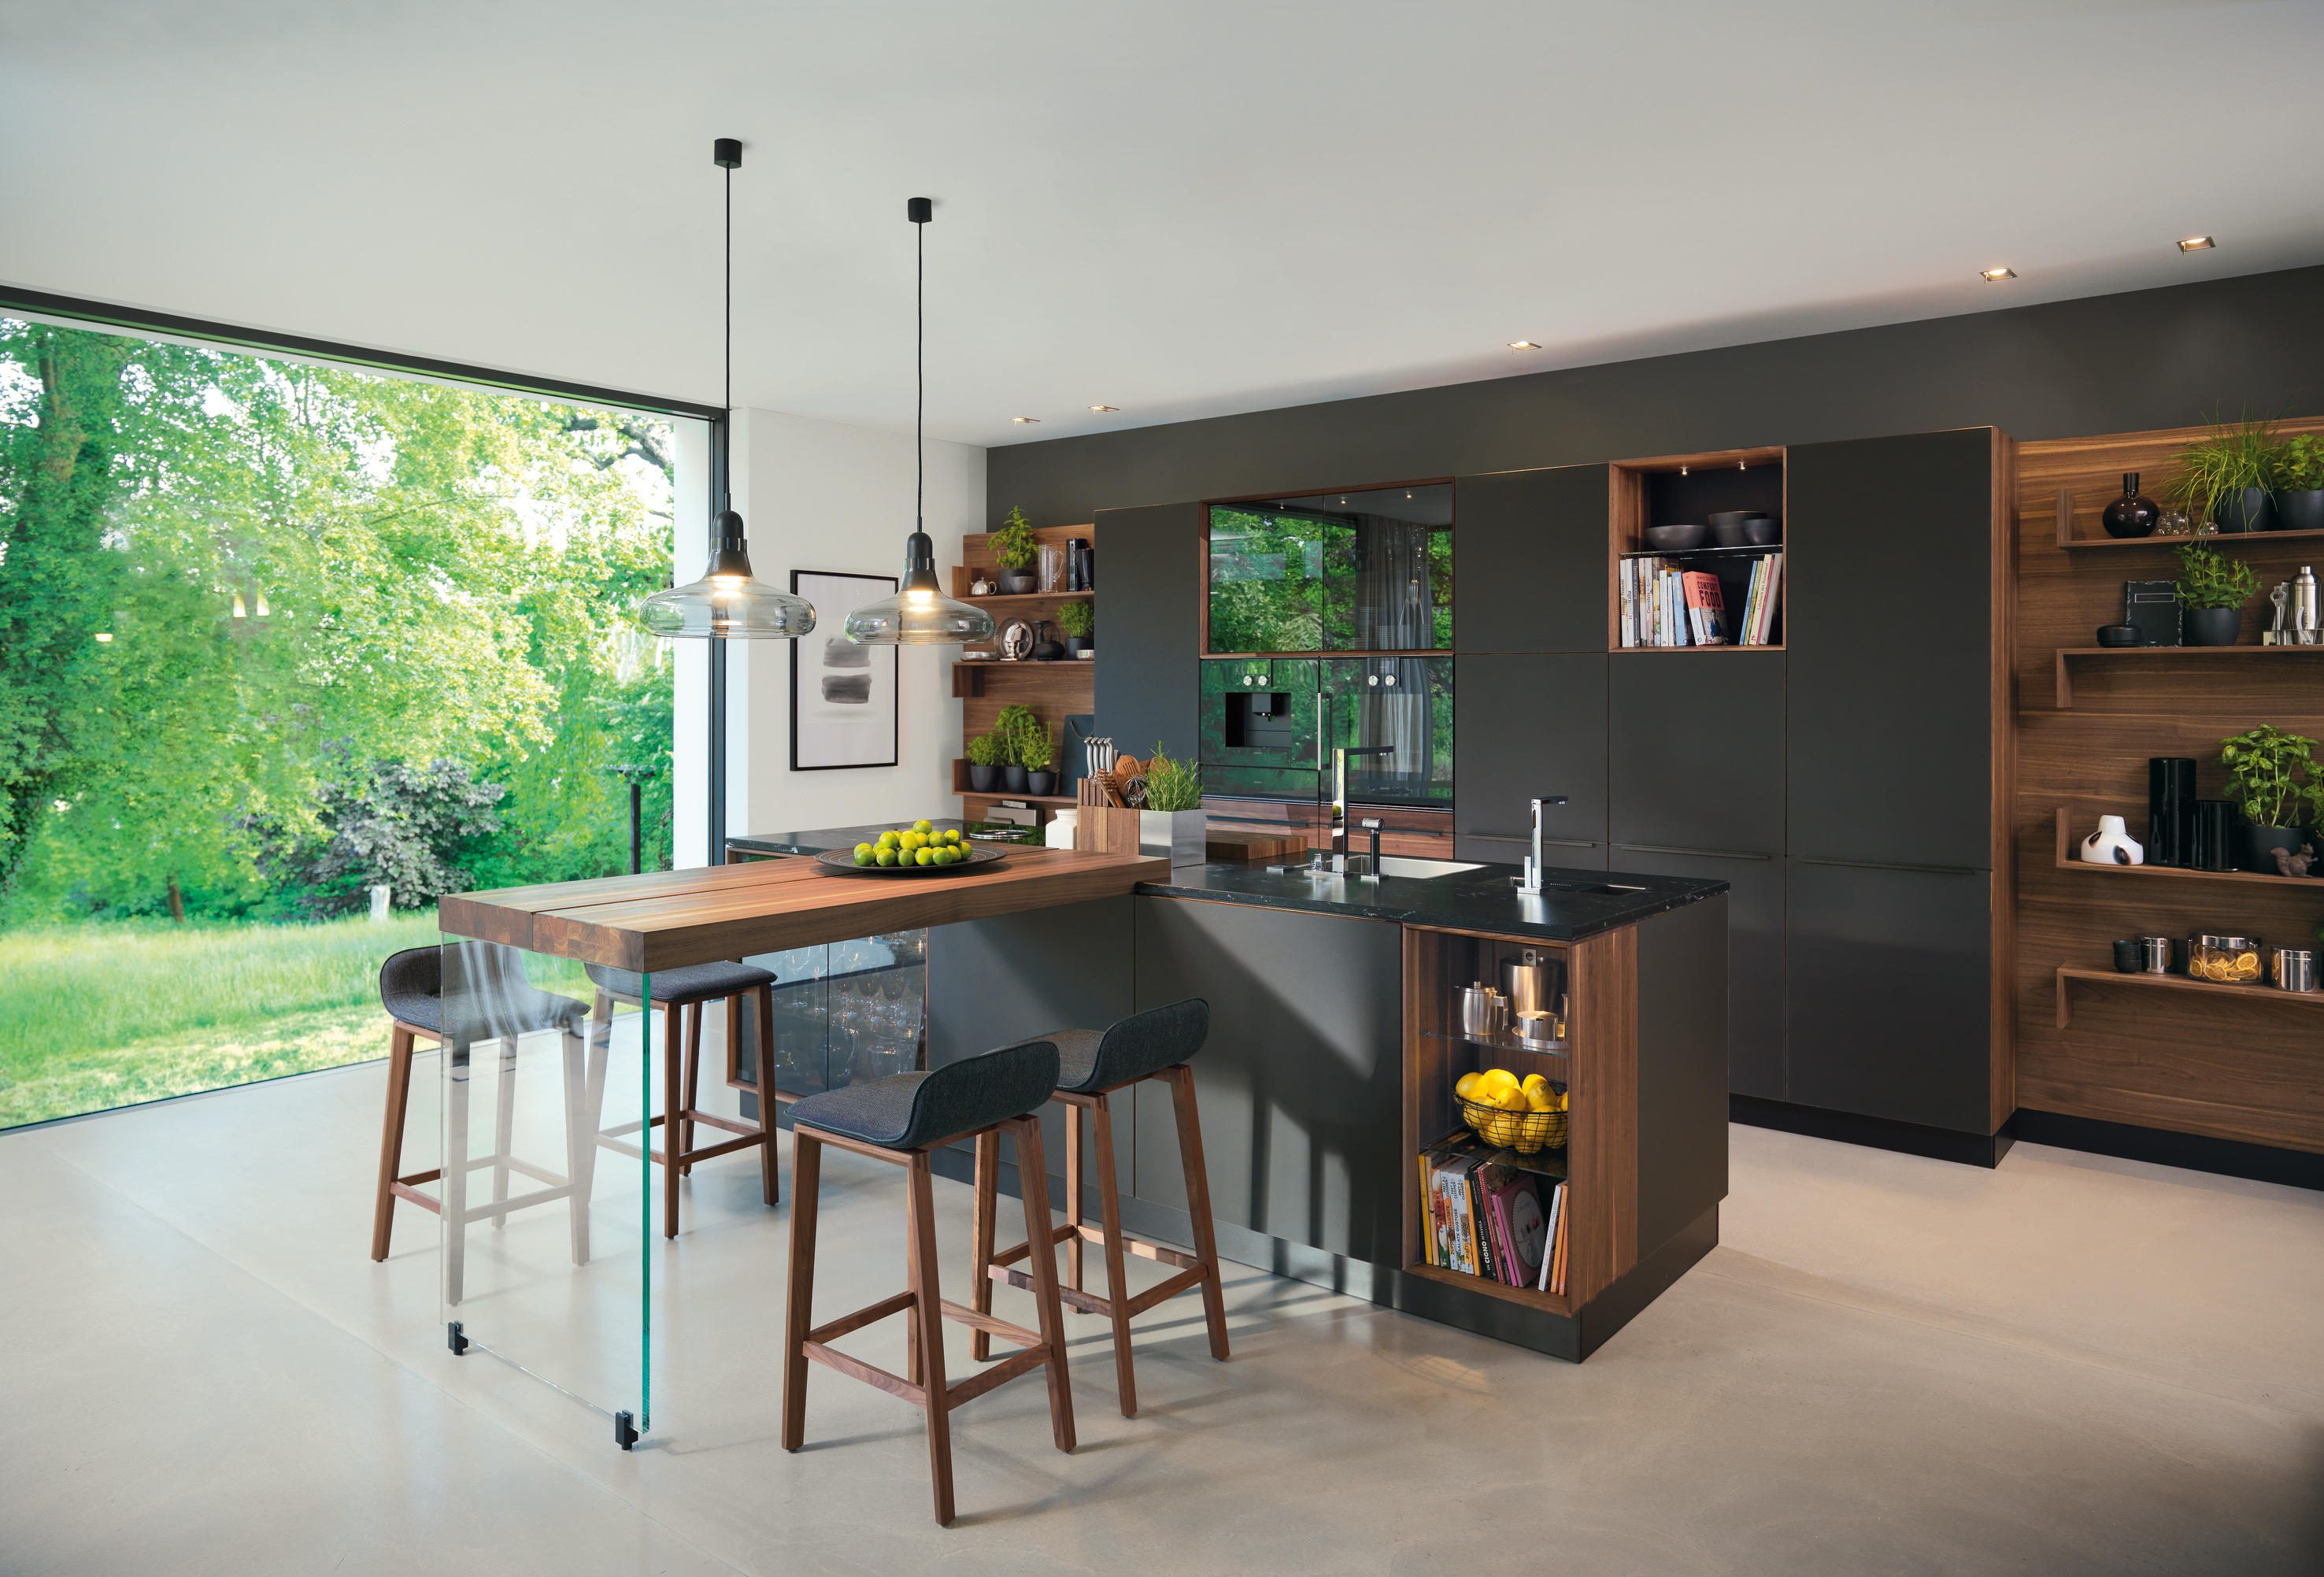 black line kitchen by TEAM 7 | Fitted kitchens & BLACK LINE KITCHEN - Fitted kitchens from TEAM 7 | Architonic